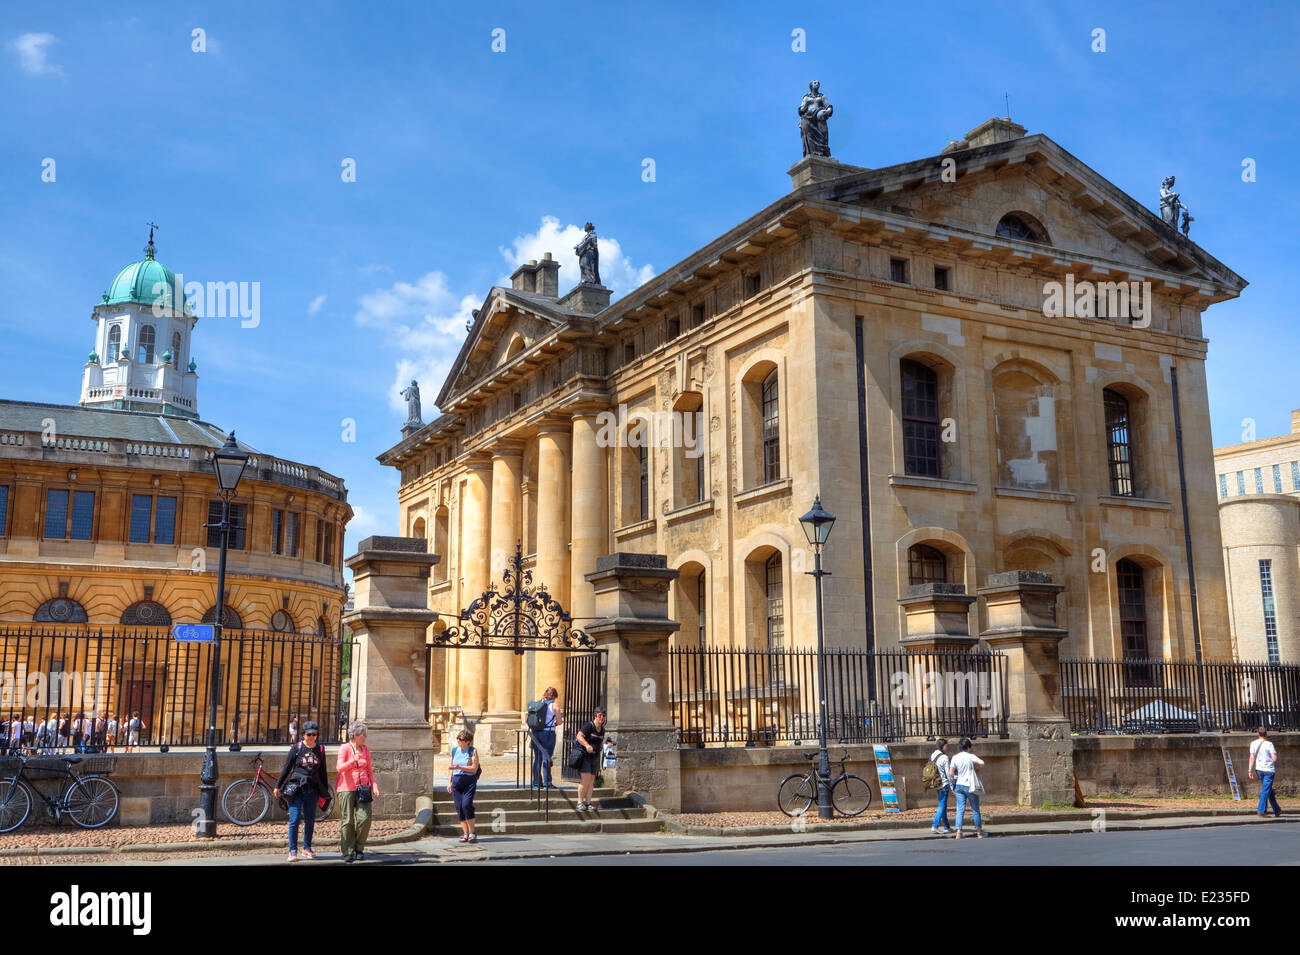 Bodleian library, Oxford, Oxfordshire, England, United Kingdom - Stock Image